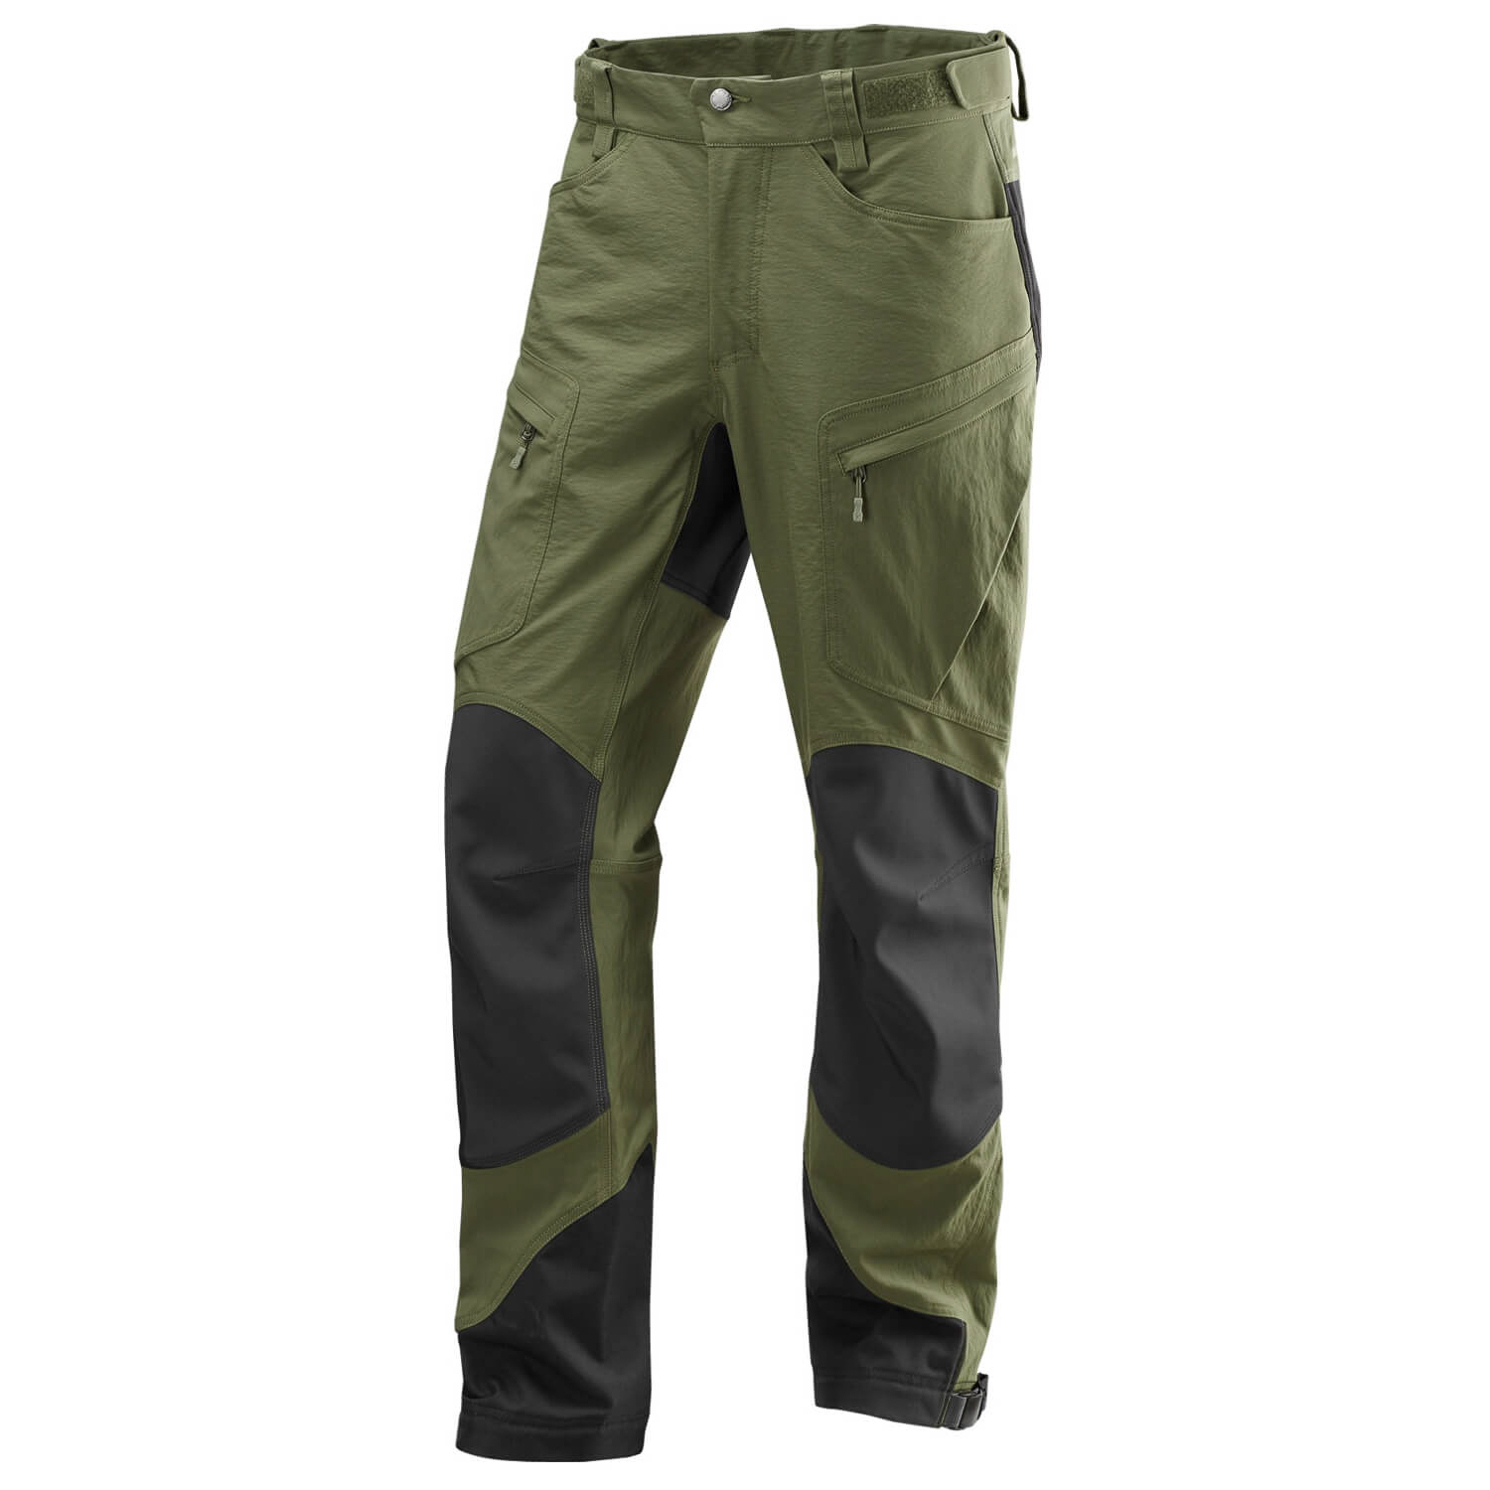 Haglofs Rugged Ii Mountain Pant Softshell Trousers Men S Buy Online Bergfreunde Eu